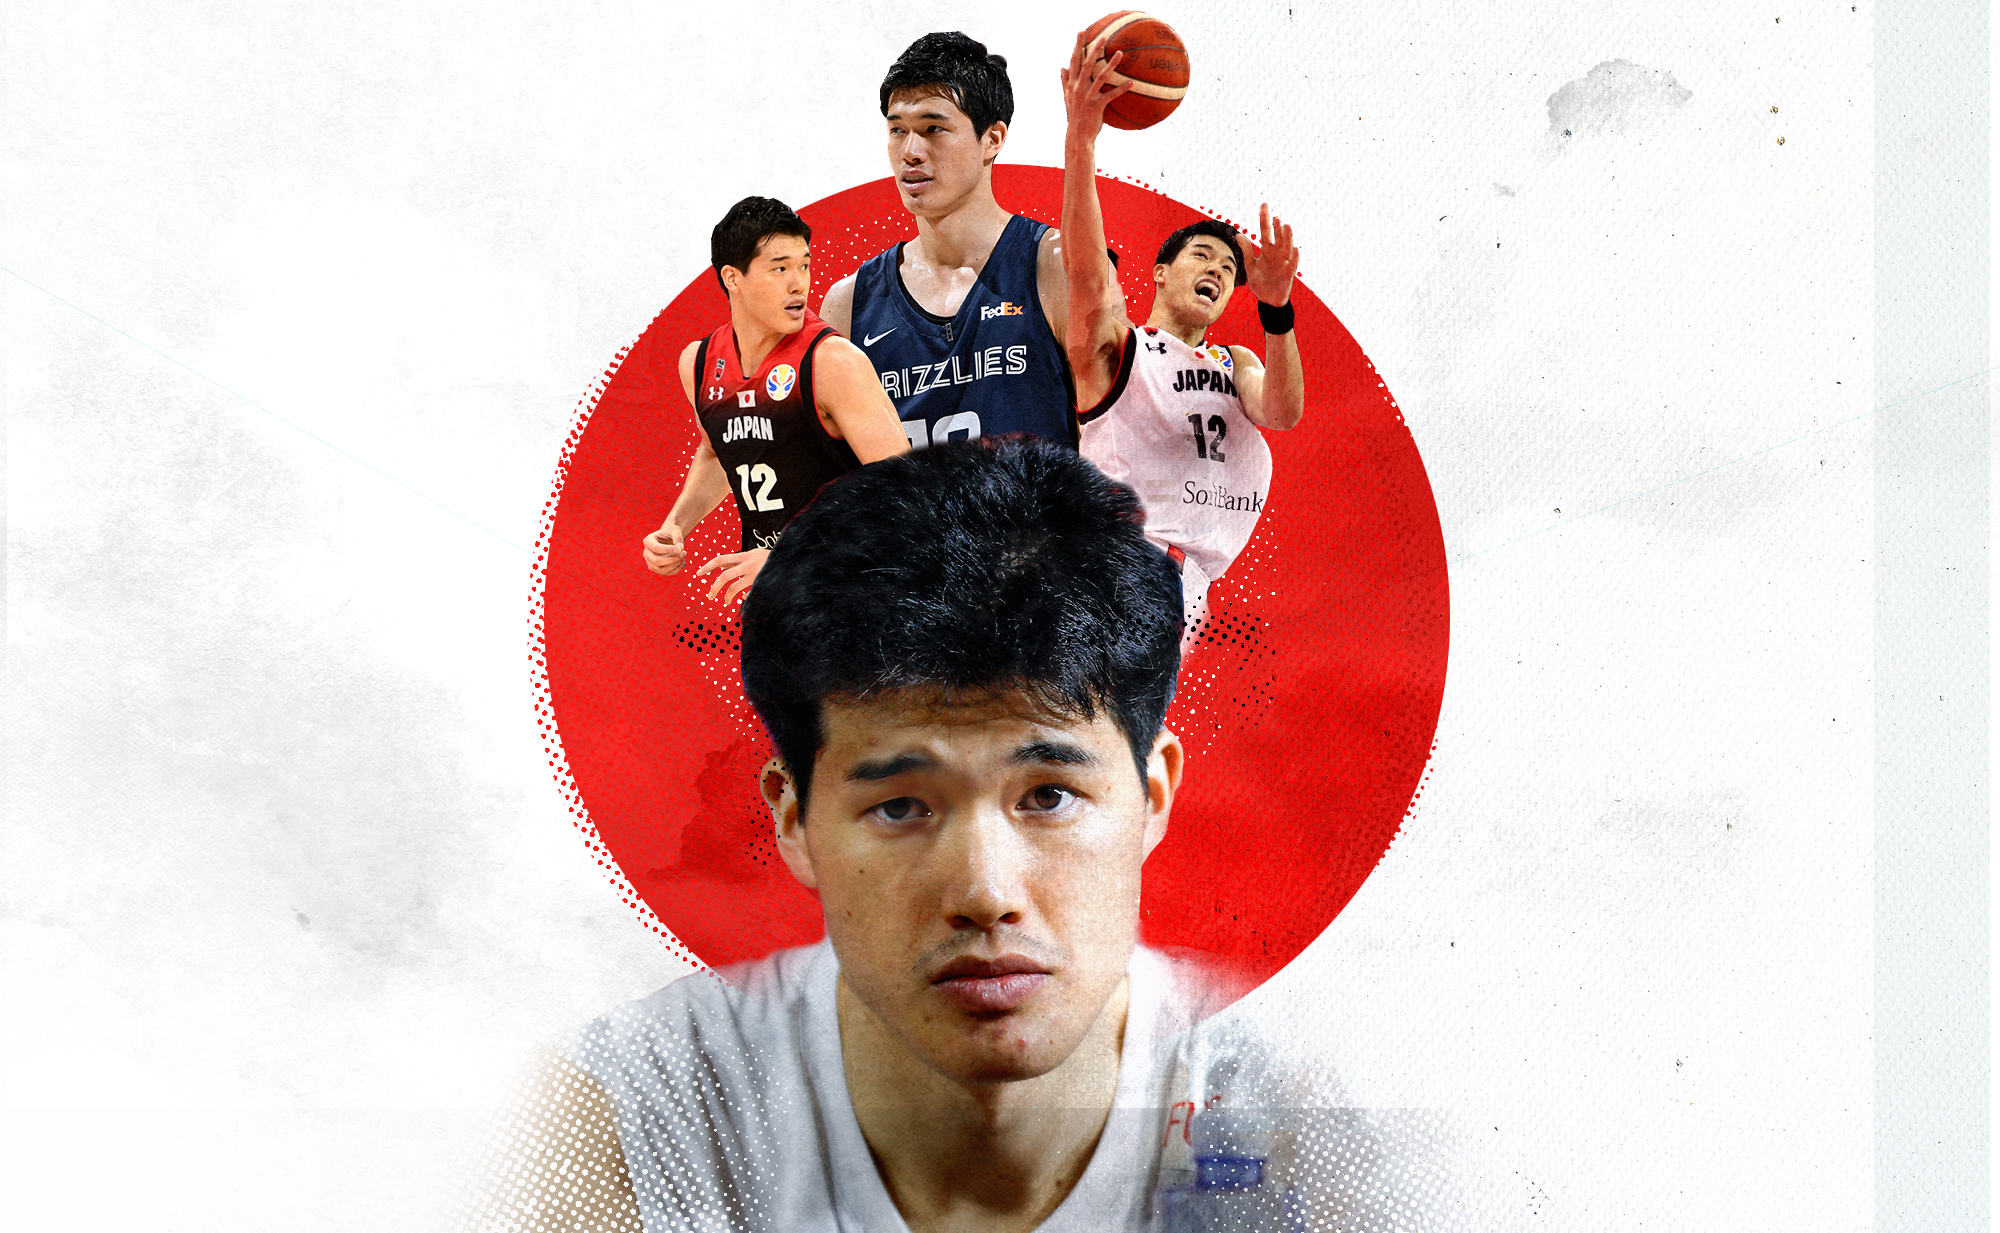 Several images of Yuta Watanabe superimposed over the flag of Japan.